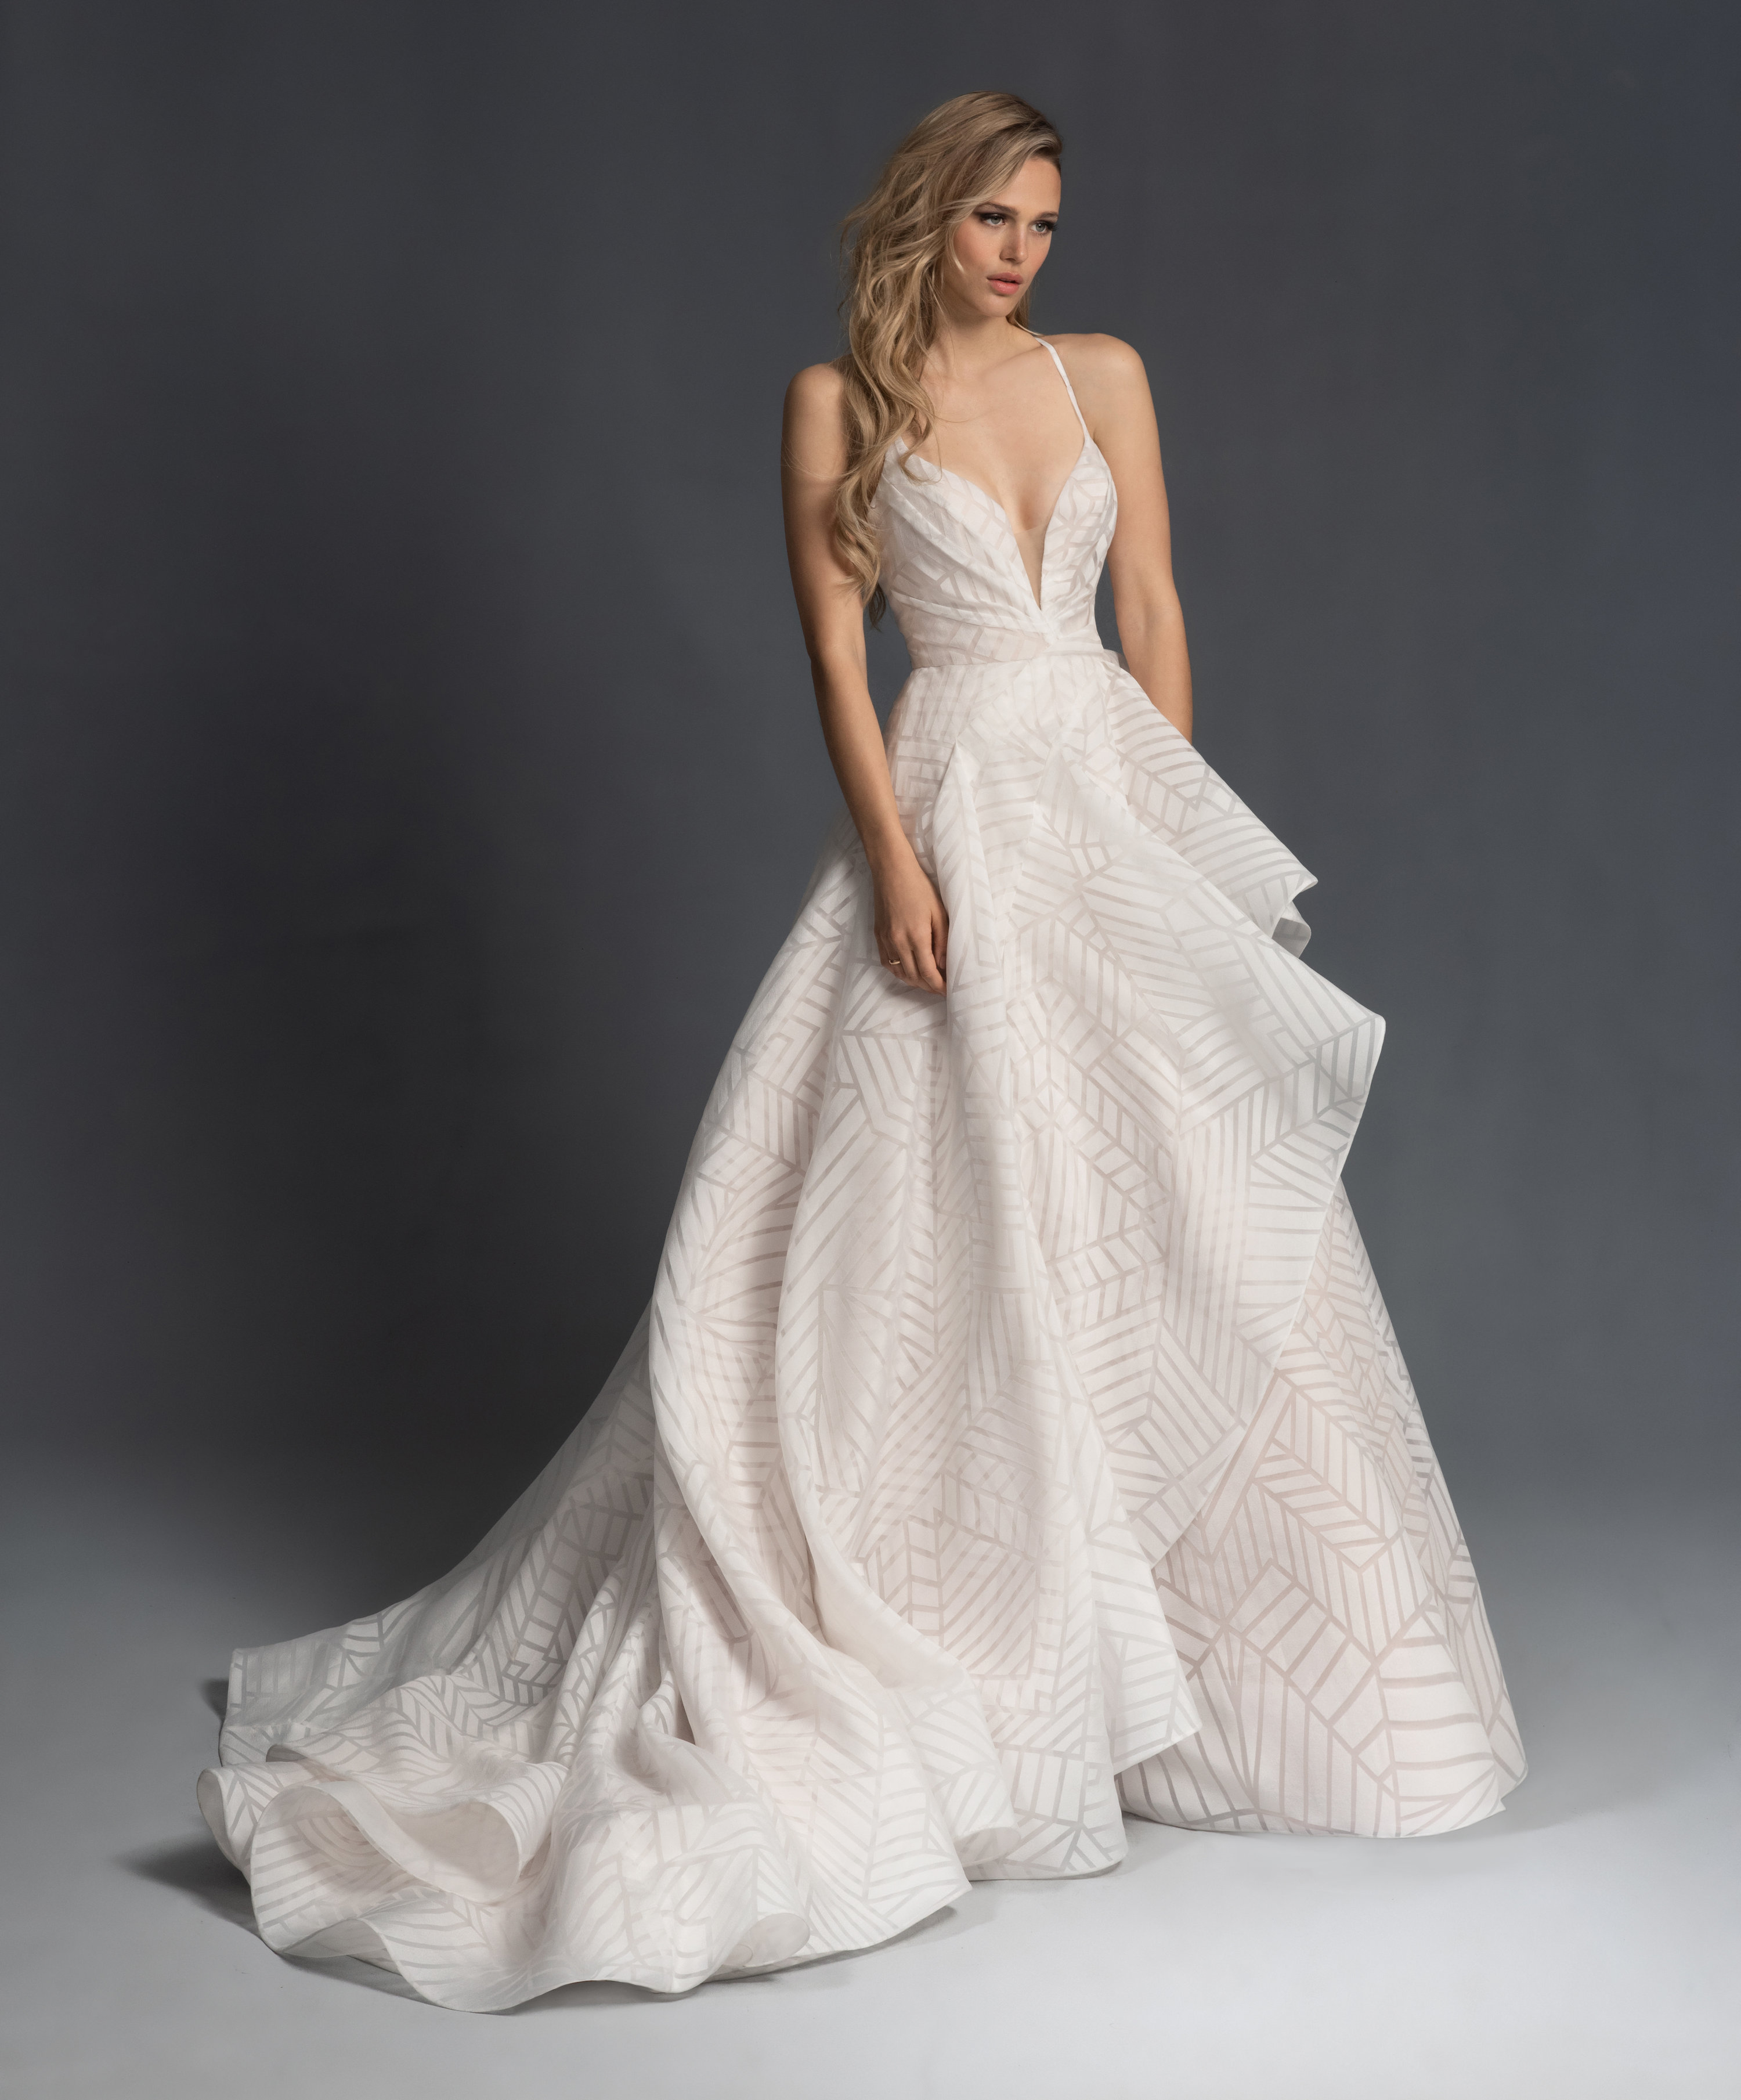 hayley-paige-bridal-fall-2019-style-6958-charles